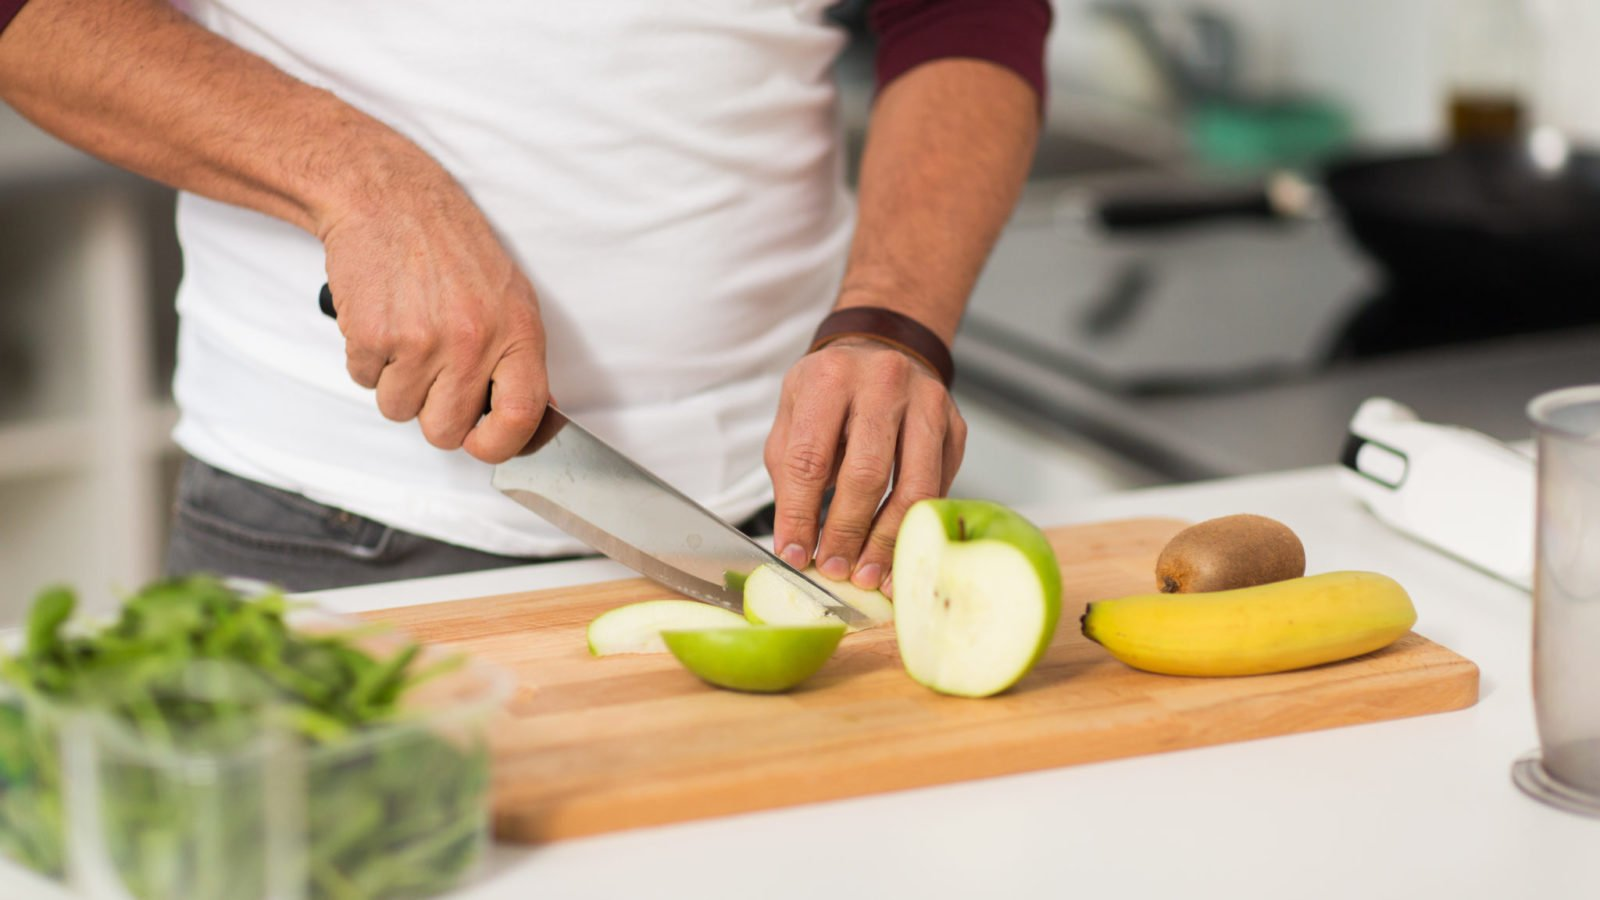 photo of man preparing healthy food, important in nutritional epigenetics